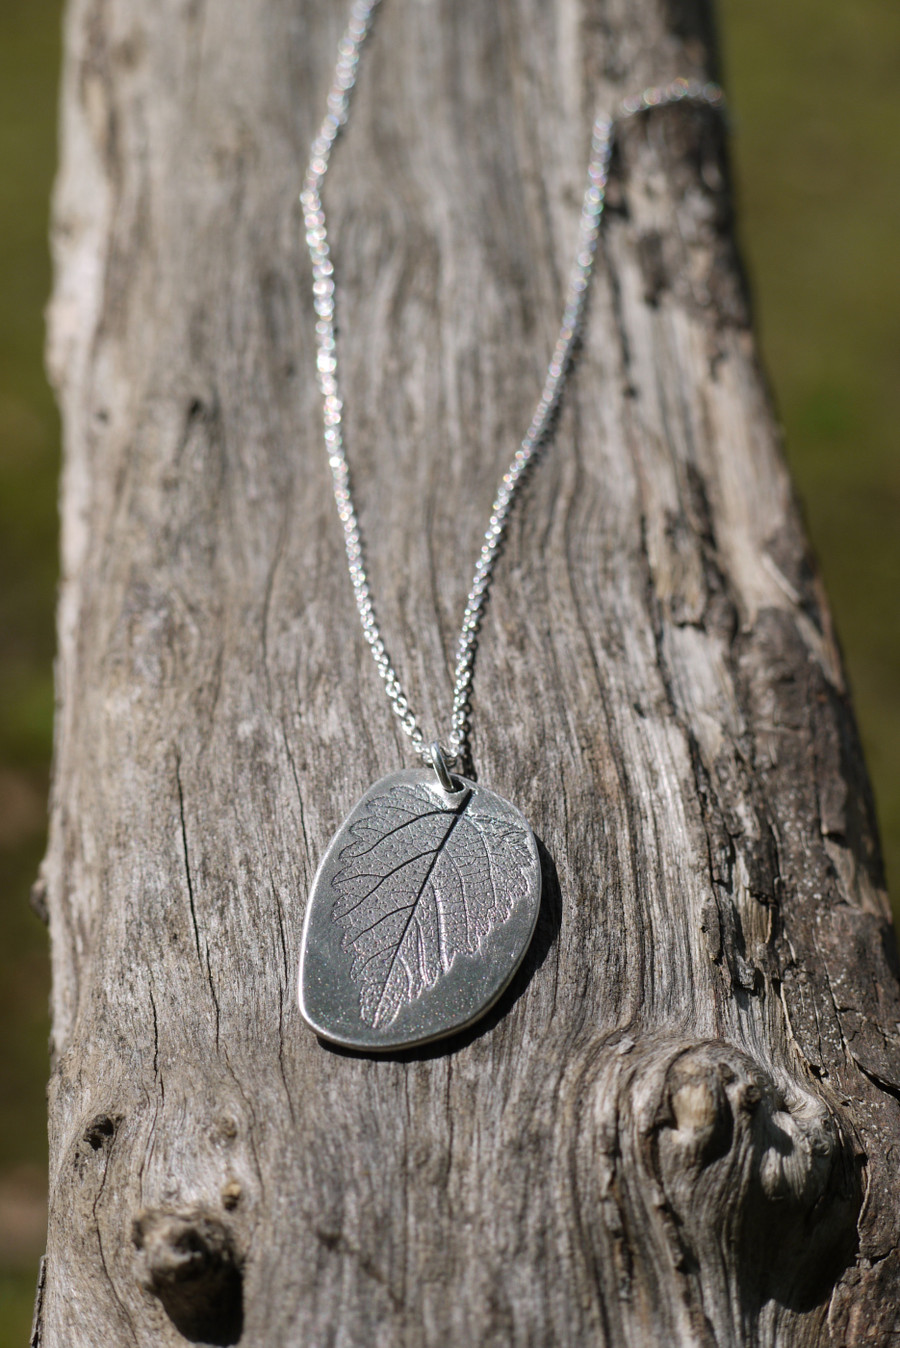 Art Clay Fine Silver picks up detail beautifully! Even the finest pattern, like delicate leaves or finger prints.